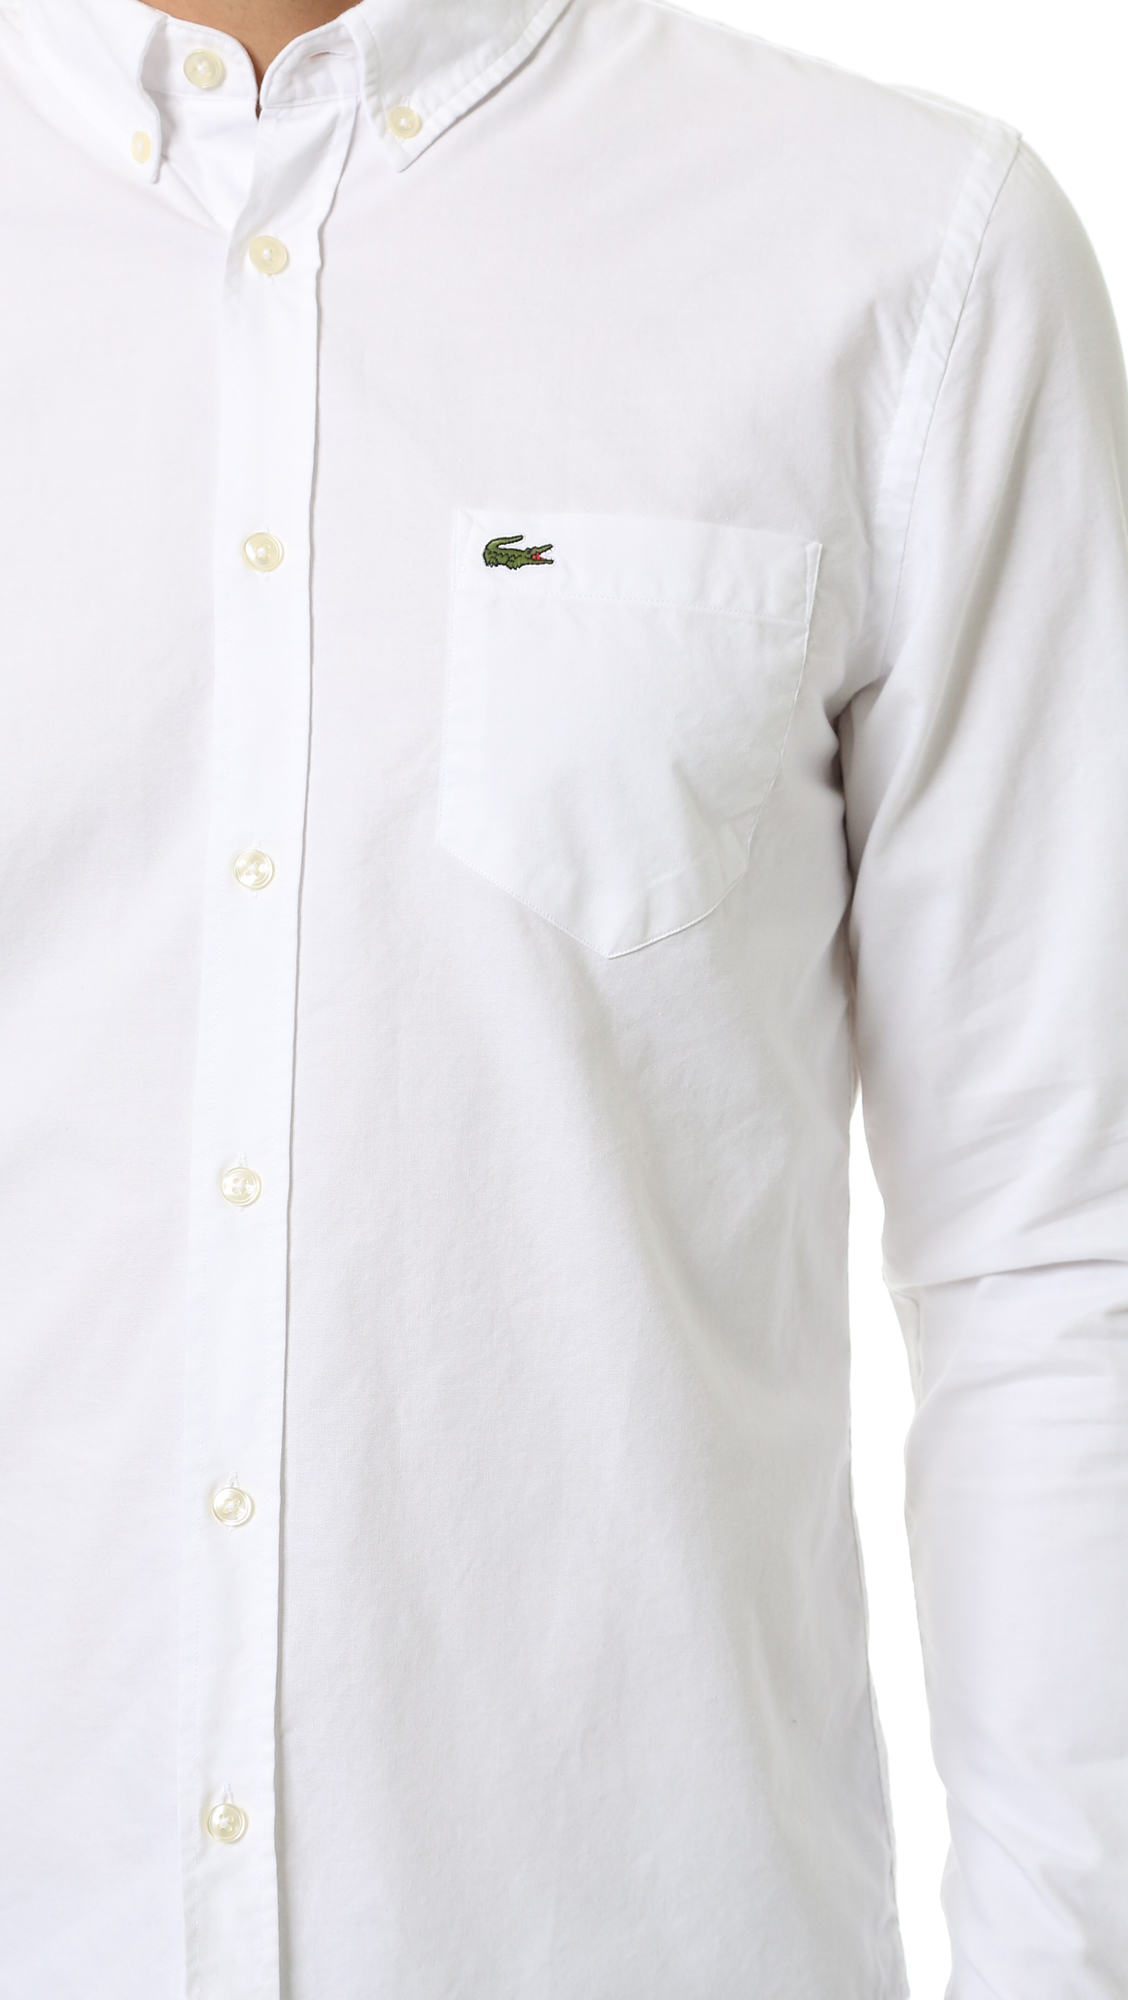 6664d7e9 Lacoste Cotton Casual Oxford Shirt in White for Men - Lyst